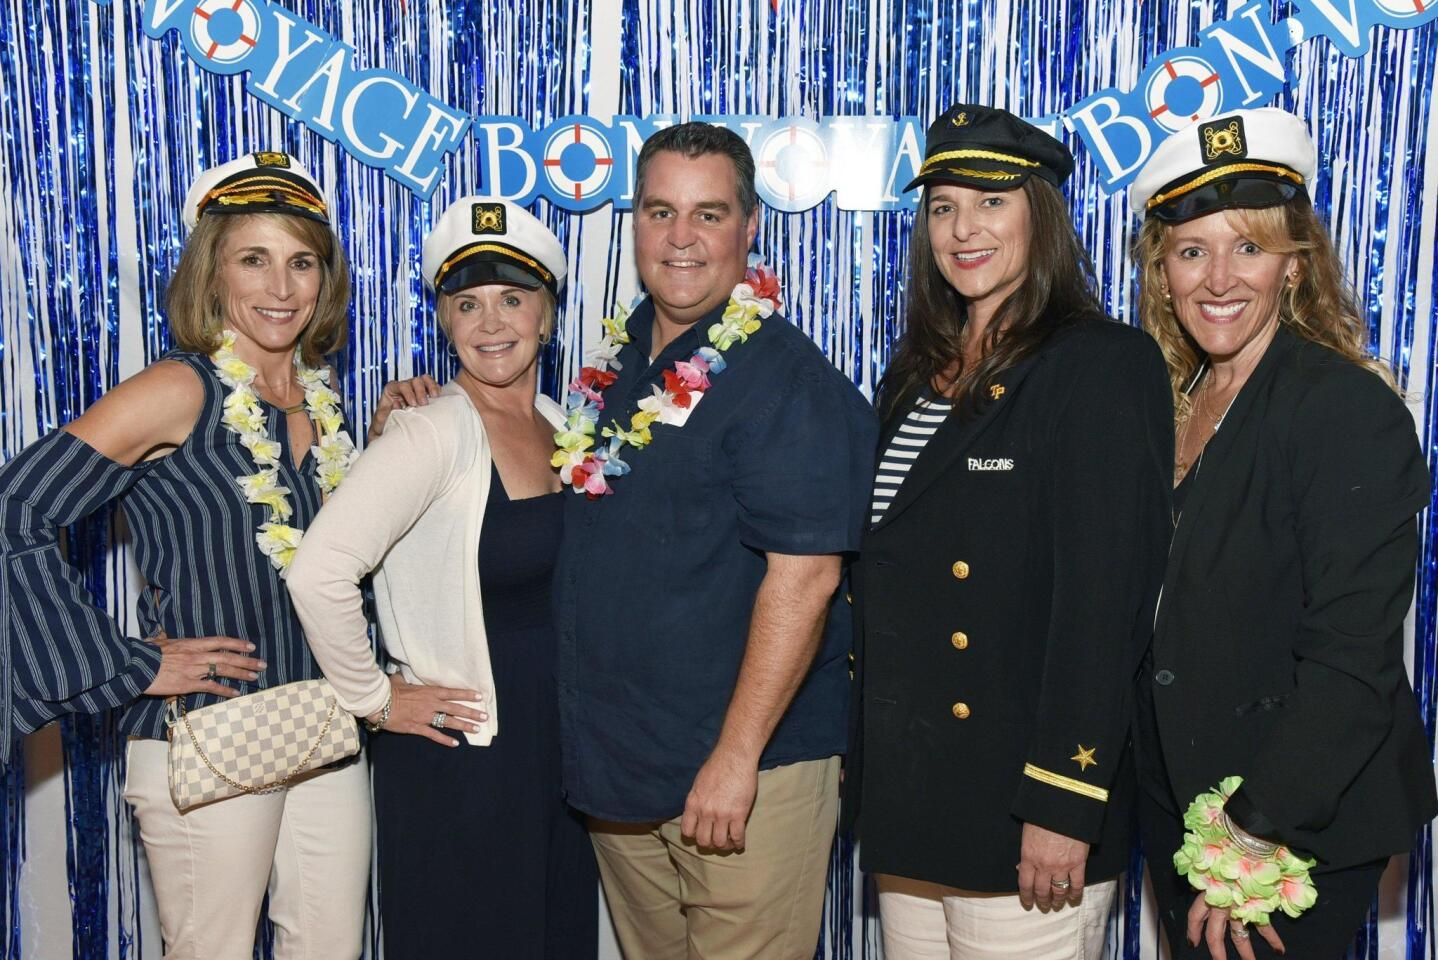 Susie Mikolajewski, Executive Director Nicole Baril, Principal Rob Coppo, Shelley Stevenson, Michelle Seda